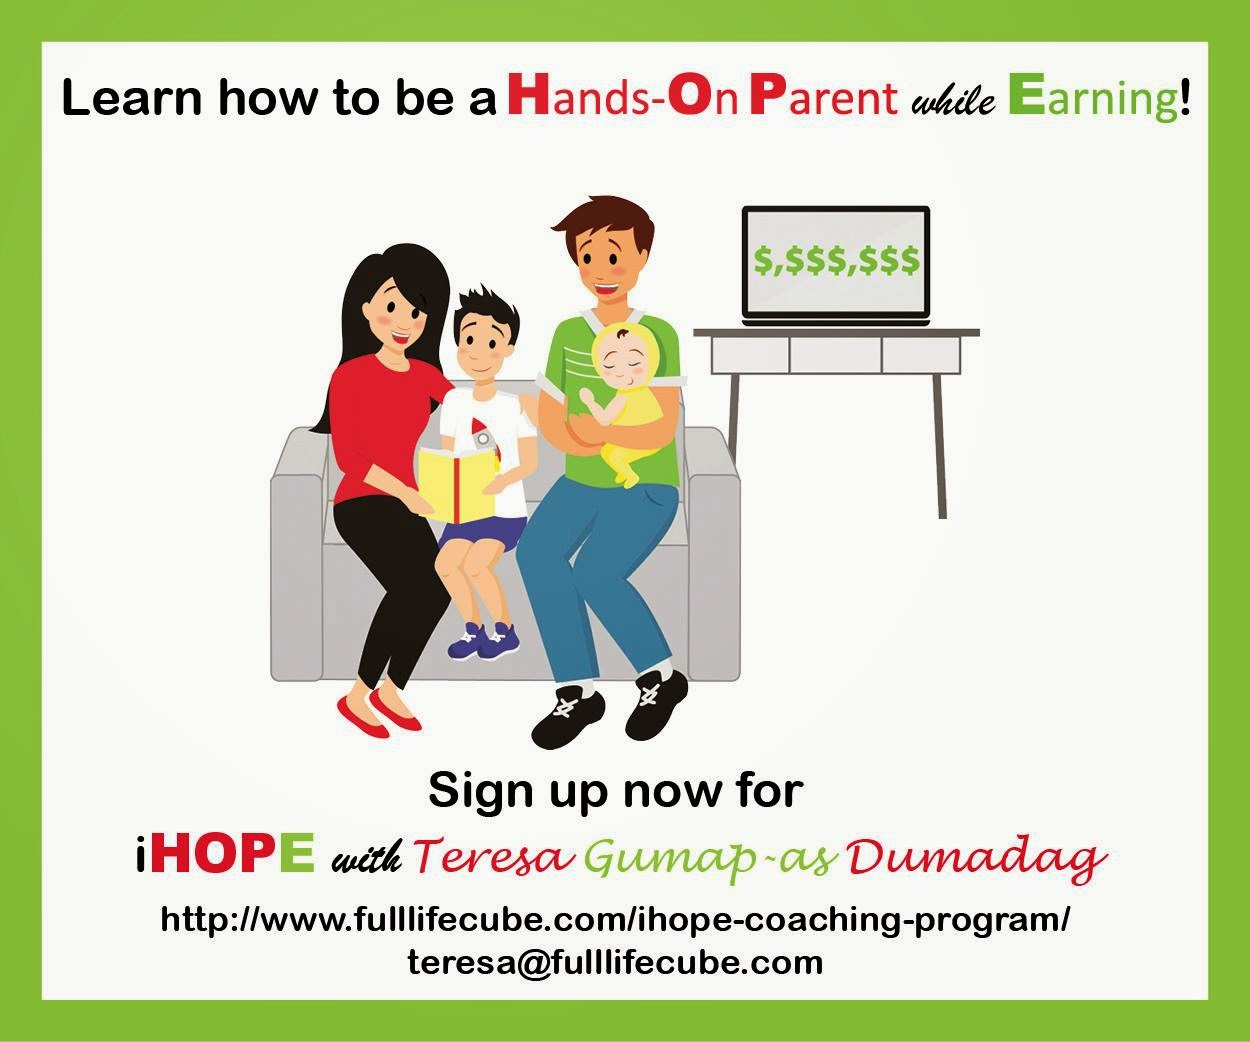 Join The Hands-on Parent while Earning Network